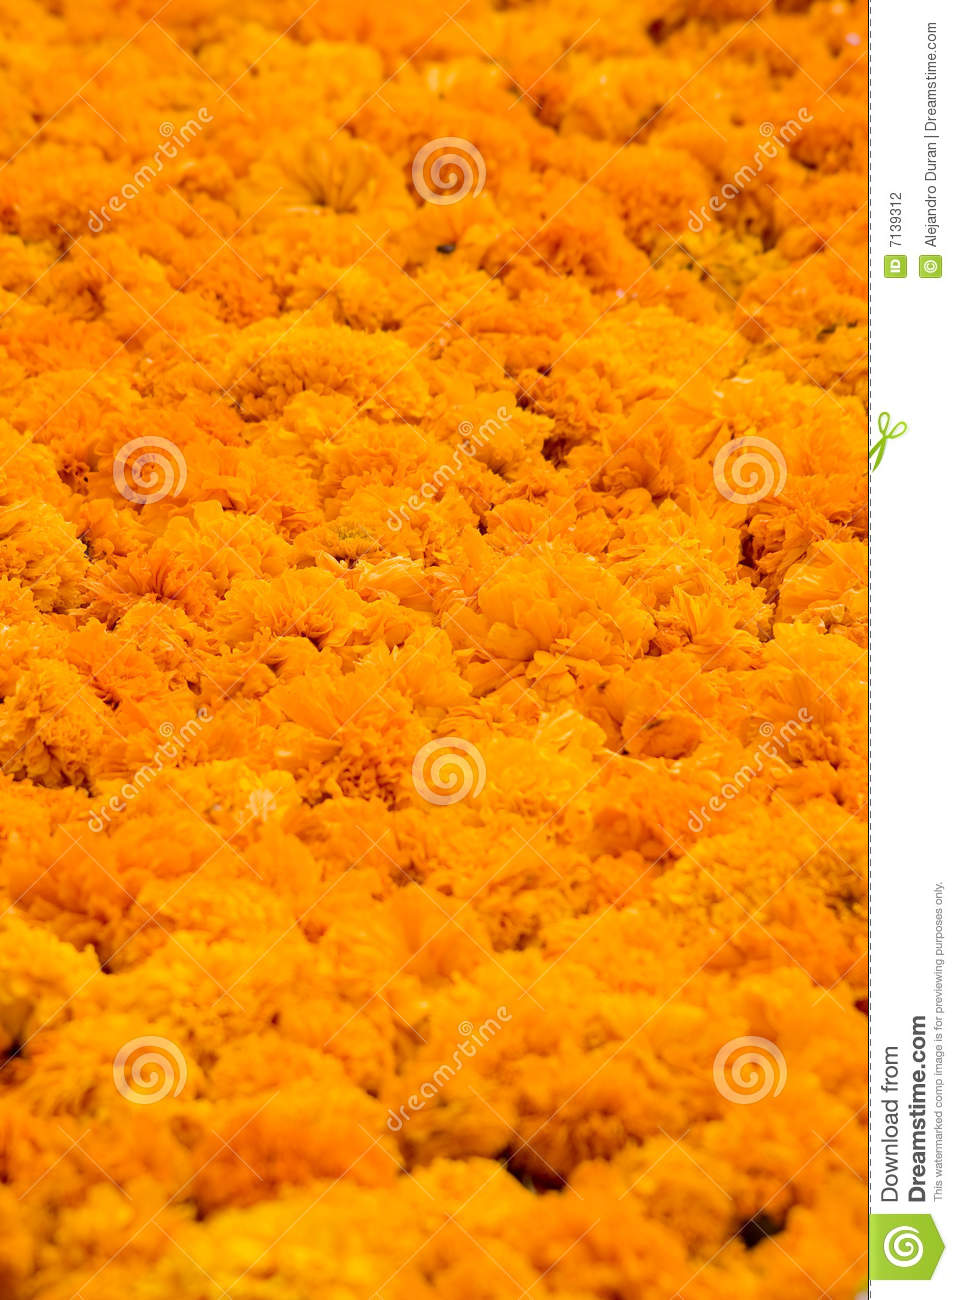 Fall Of The Leaf Wallpaper Cempasuchil Flower Stock Photography Image 7139312